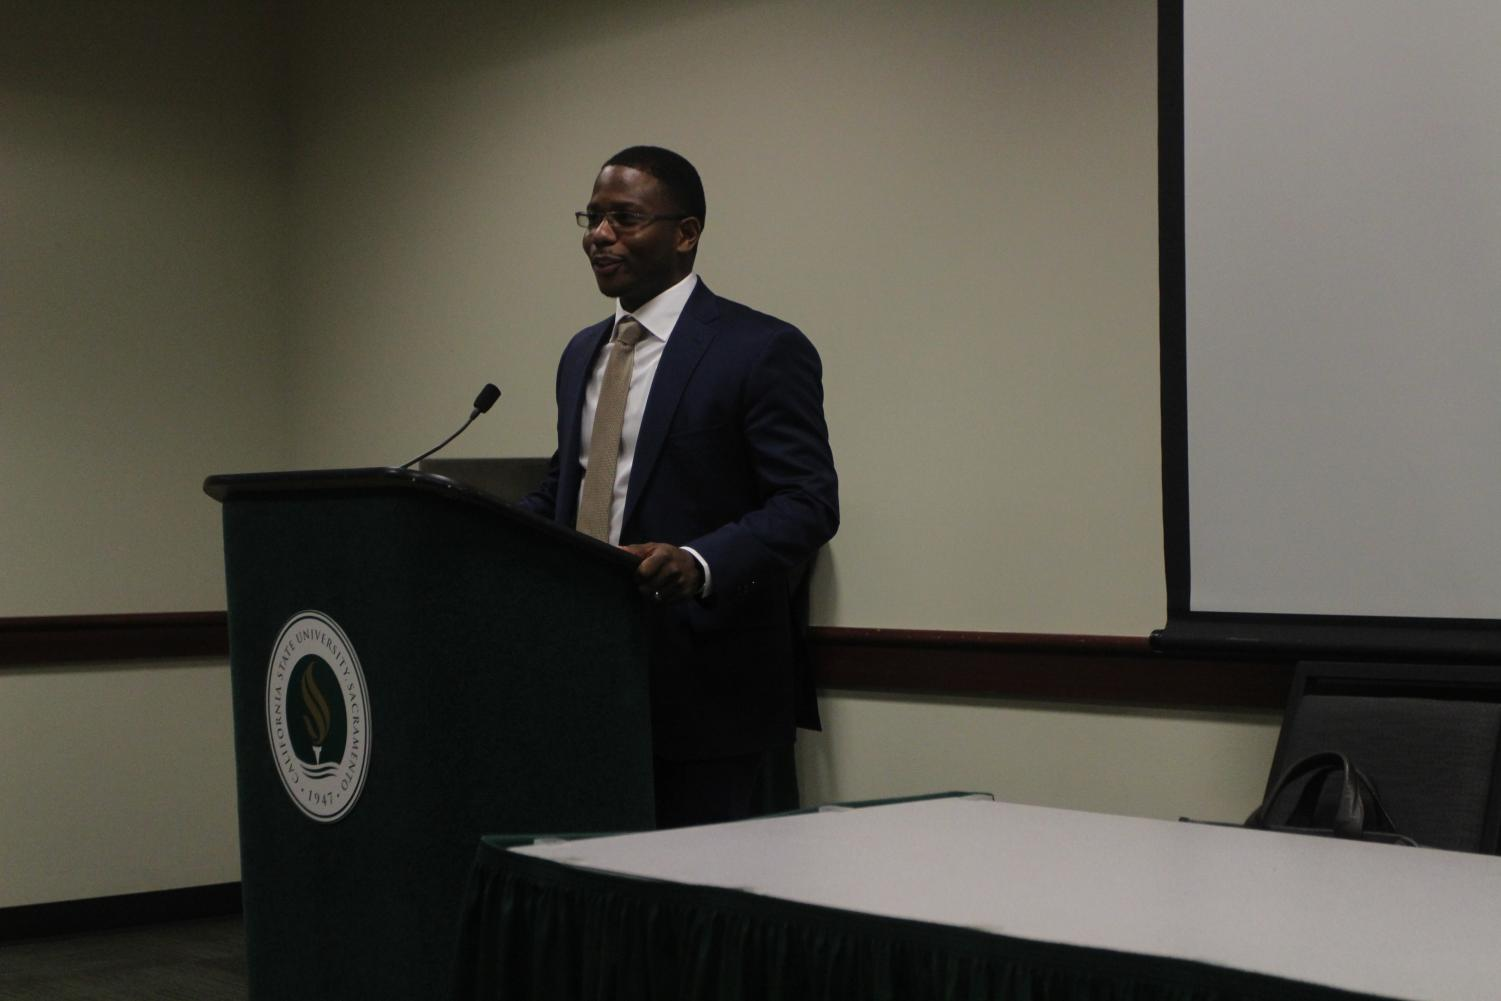 Micah Grant, a Natomas Unified School District trustee, speaks at a Carter G. Woodson lecture in the Orchard Suite at Sacramento State on Feb. 20, 2018. Grant showcased his personal experiences both professionally and personally in order to promote a positive outlook on the double-conscious mind.